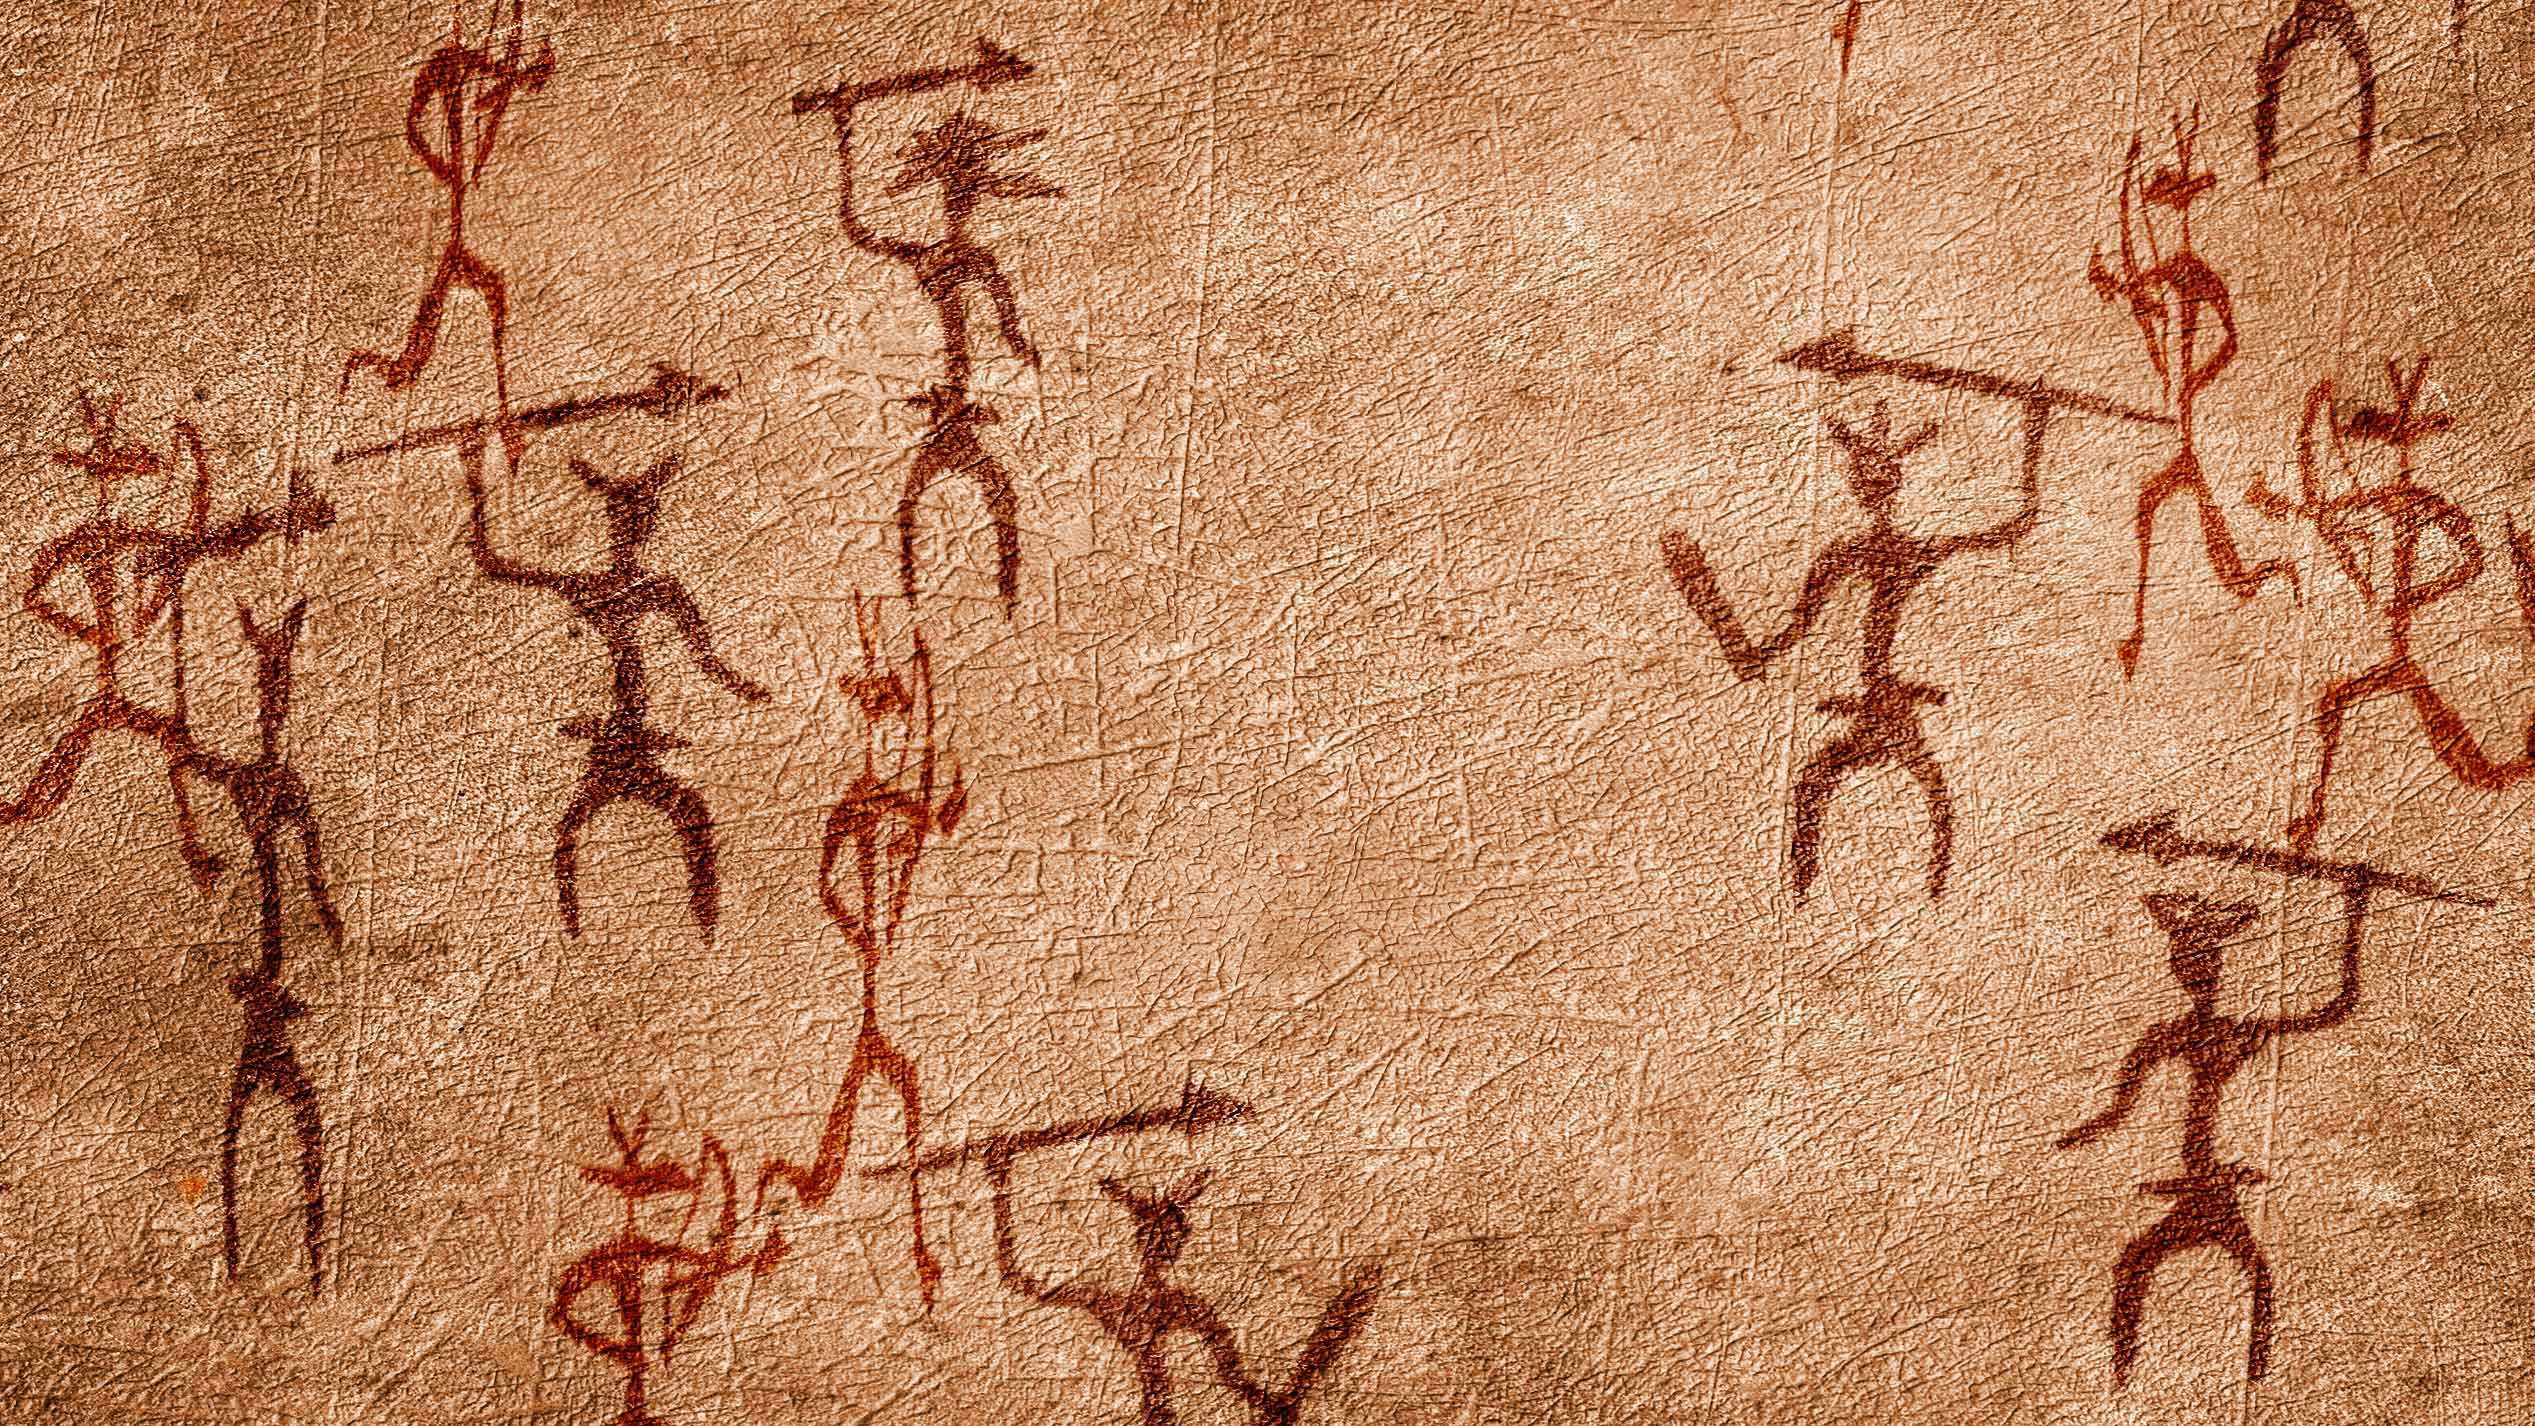 Clan Wars Blamed for Mysterious Ancient Collapse of the Male Chromosome